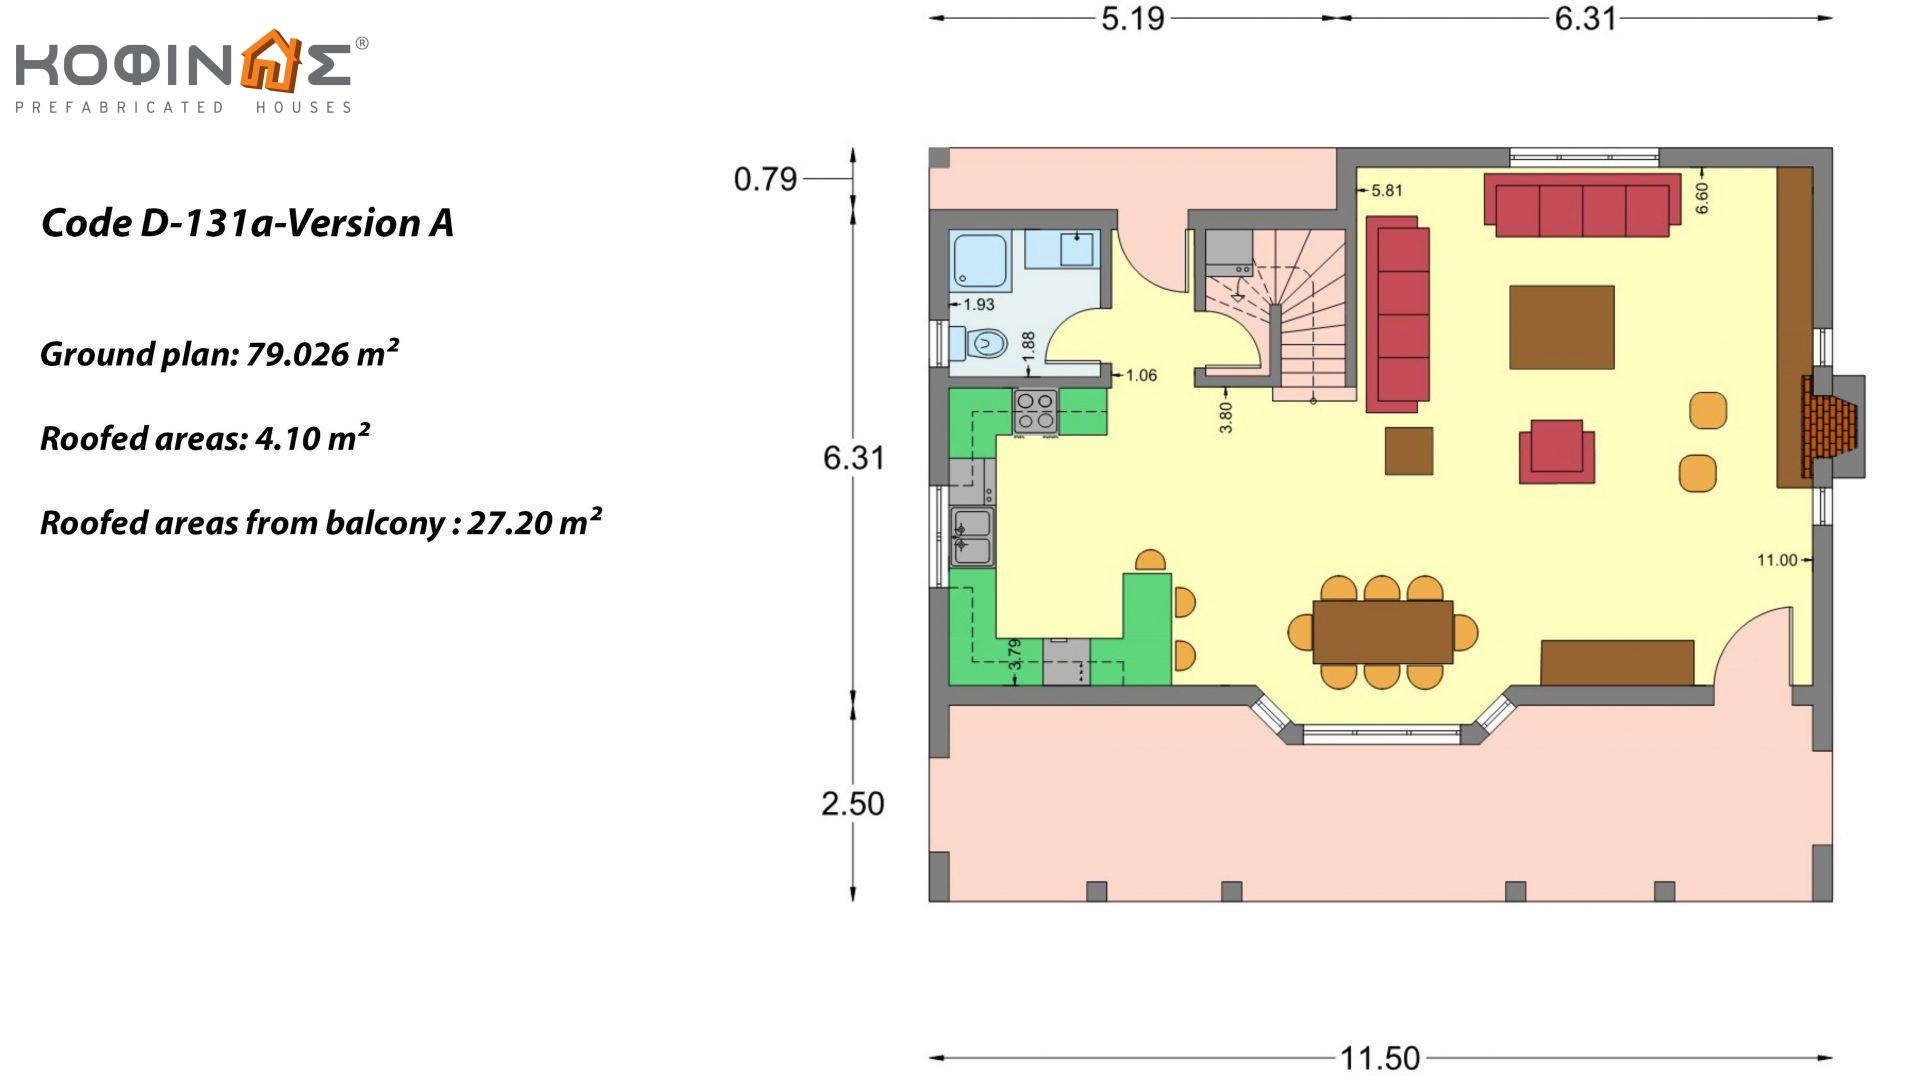 2-story house D-131a, total surface of 131.23 m² (Version A) and 142.65 m² (Version B) ,roofed areas 63.69 m²,balconies 54.11 m²(Version A) and 42.68 m²(Version B)